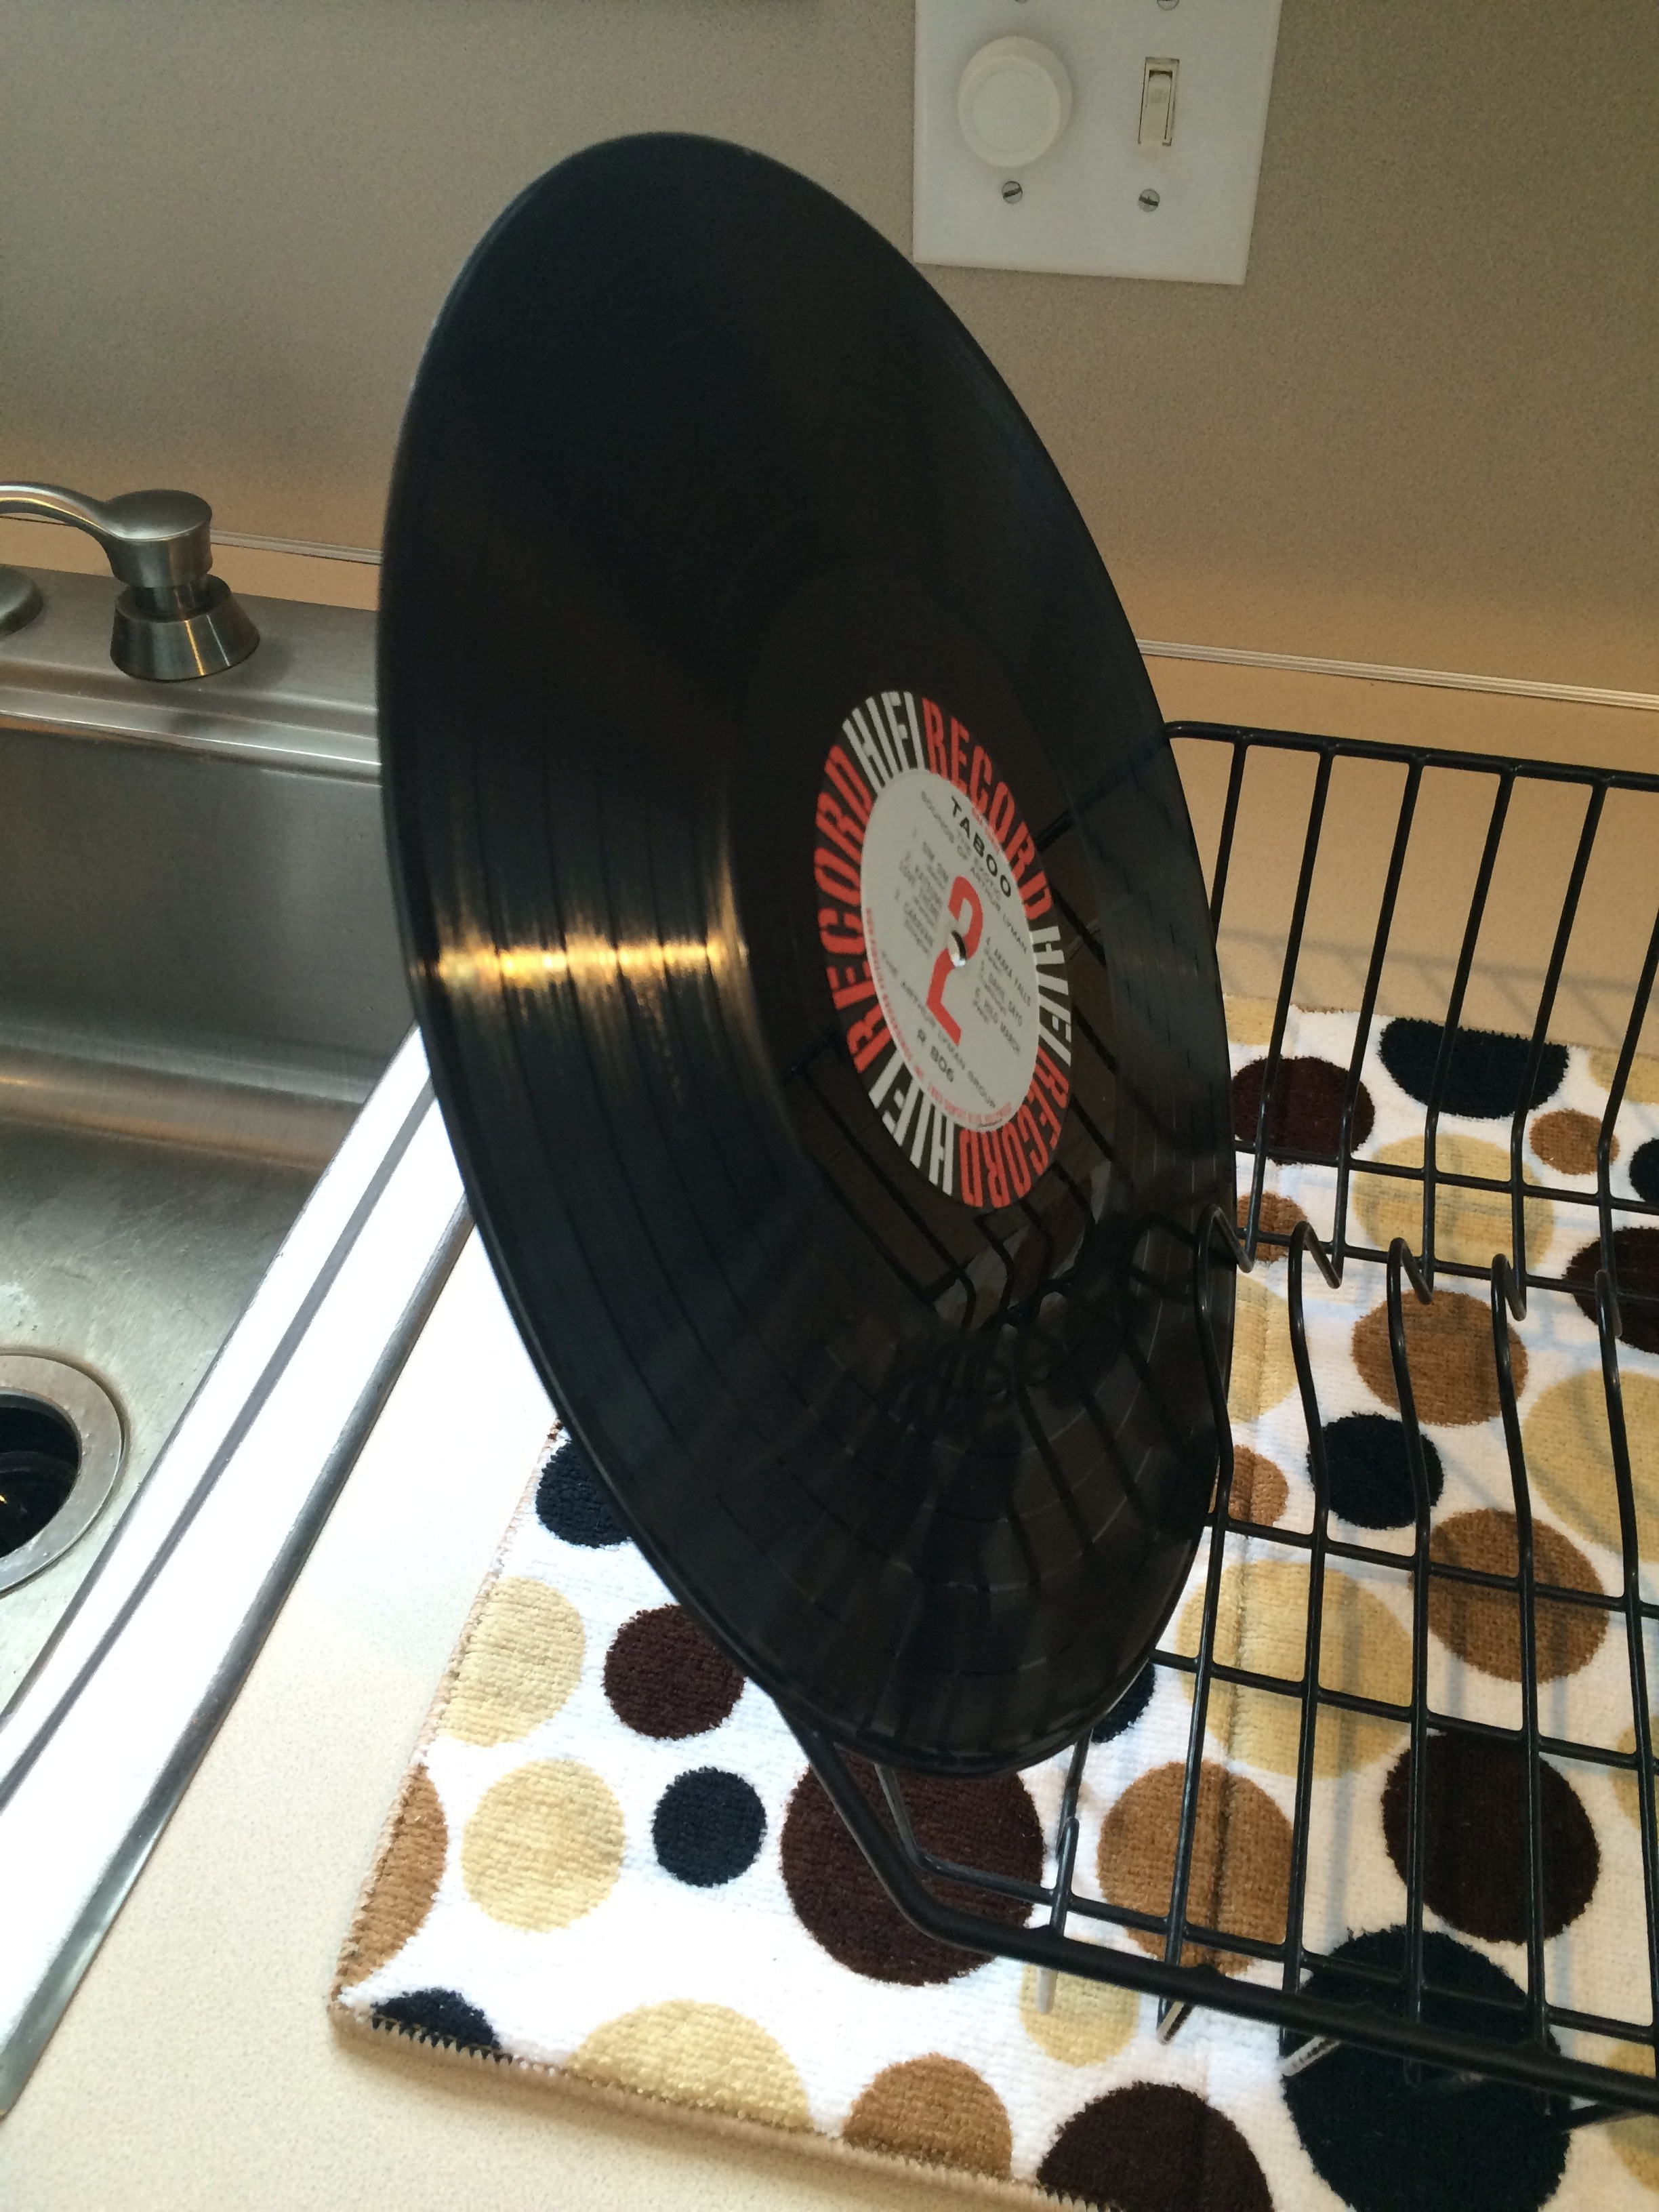 Diy Vinyl  DIY Vinyl Record Cleaning Cheap and Easy BrainstemBob